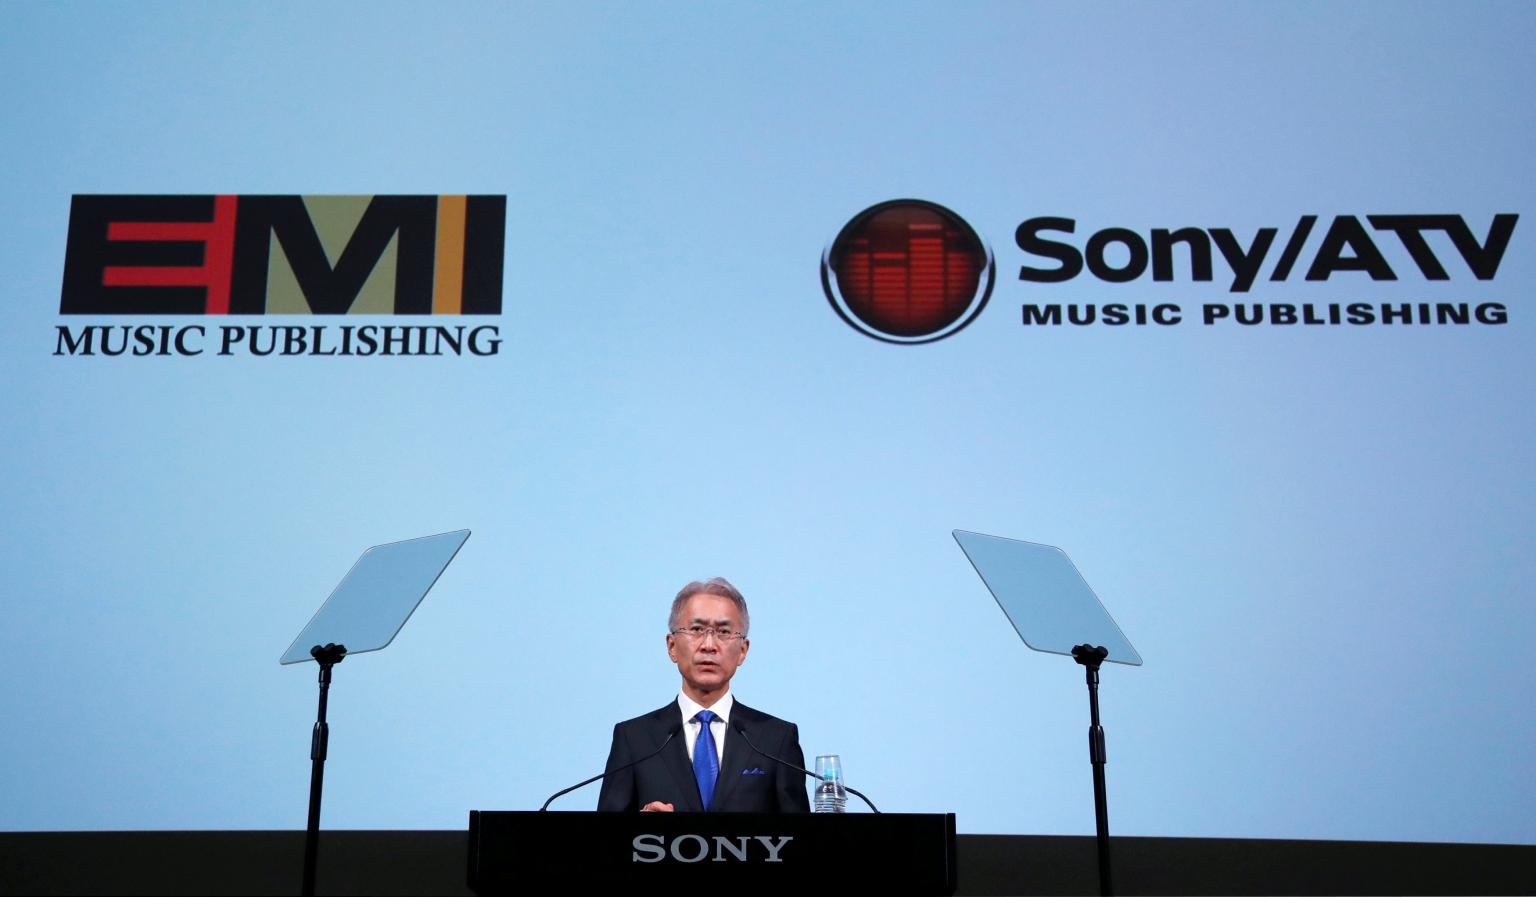 Sony in $2.3 bln deal for EMI, becomes world's biggest music publisher